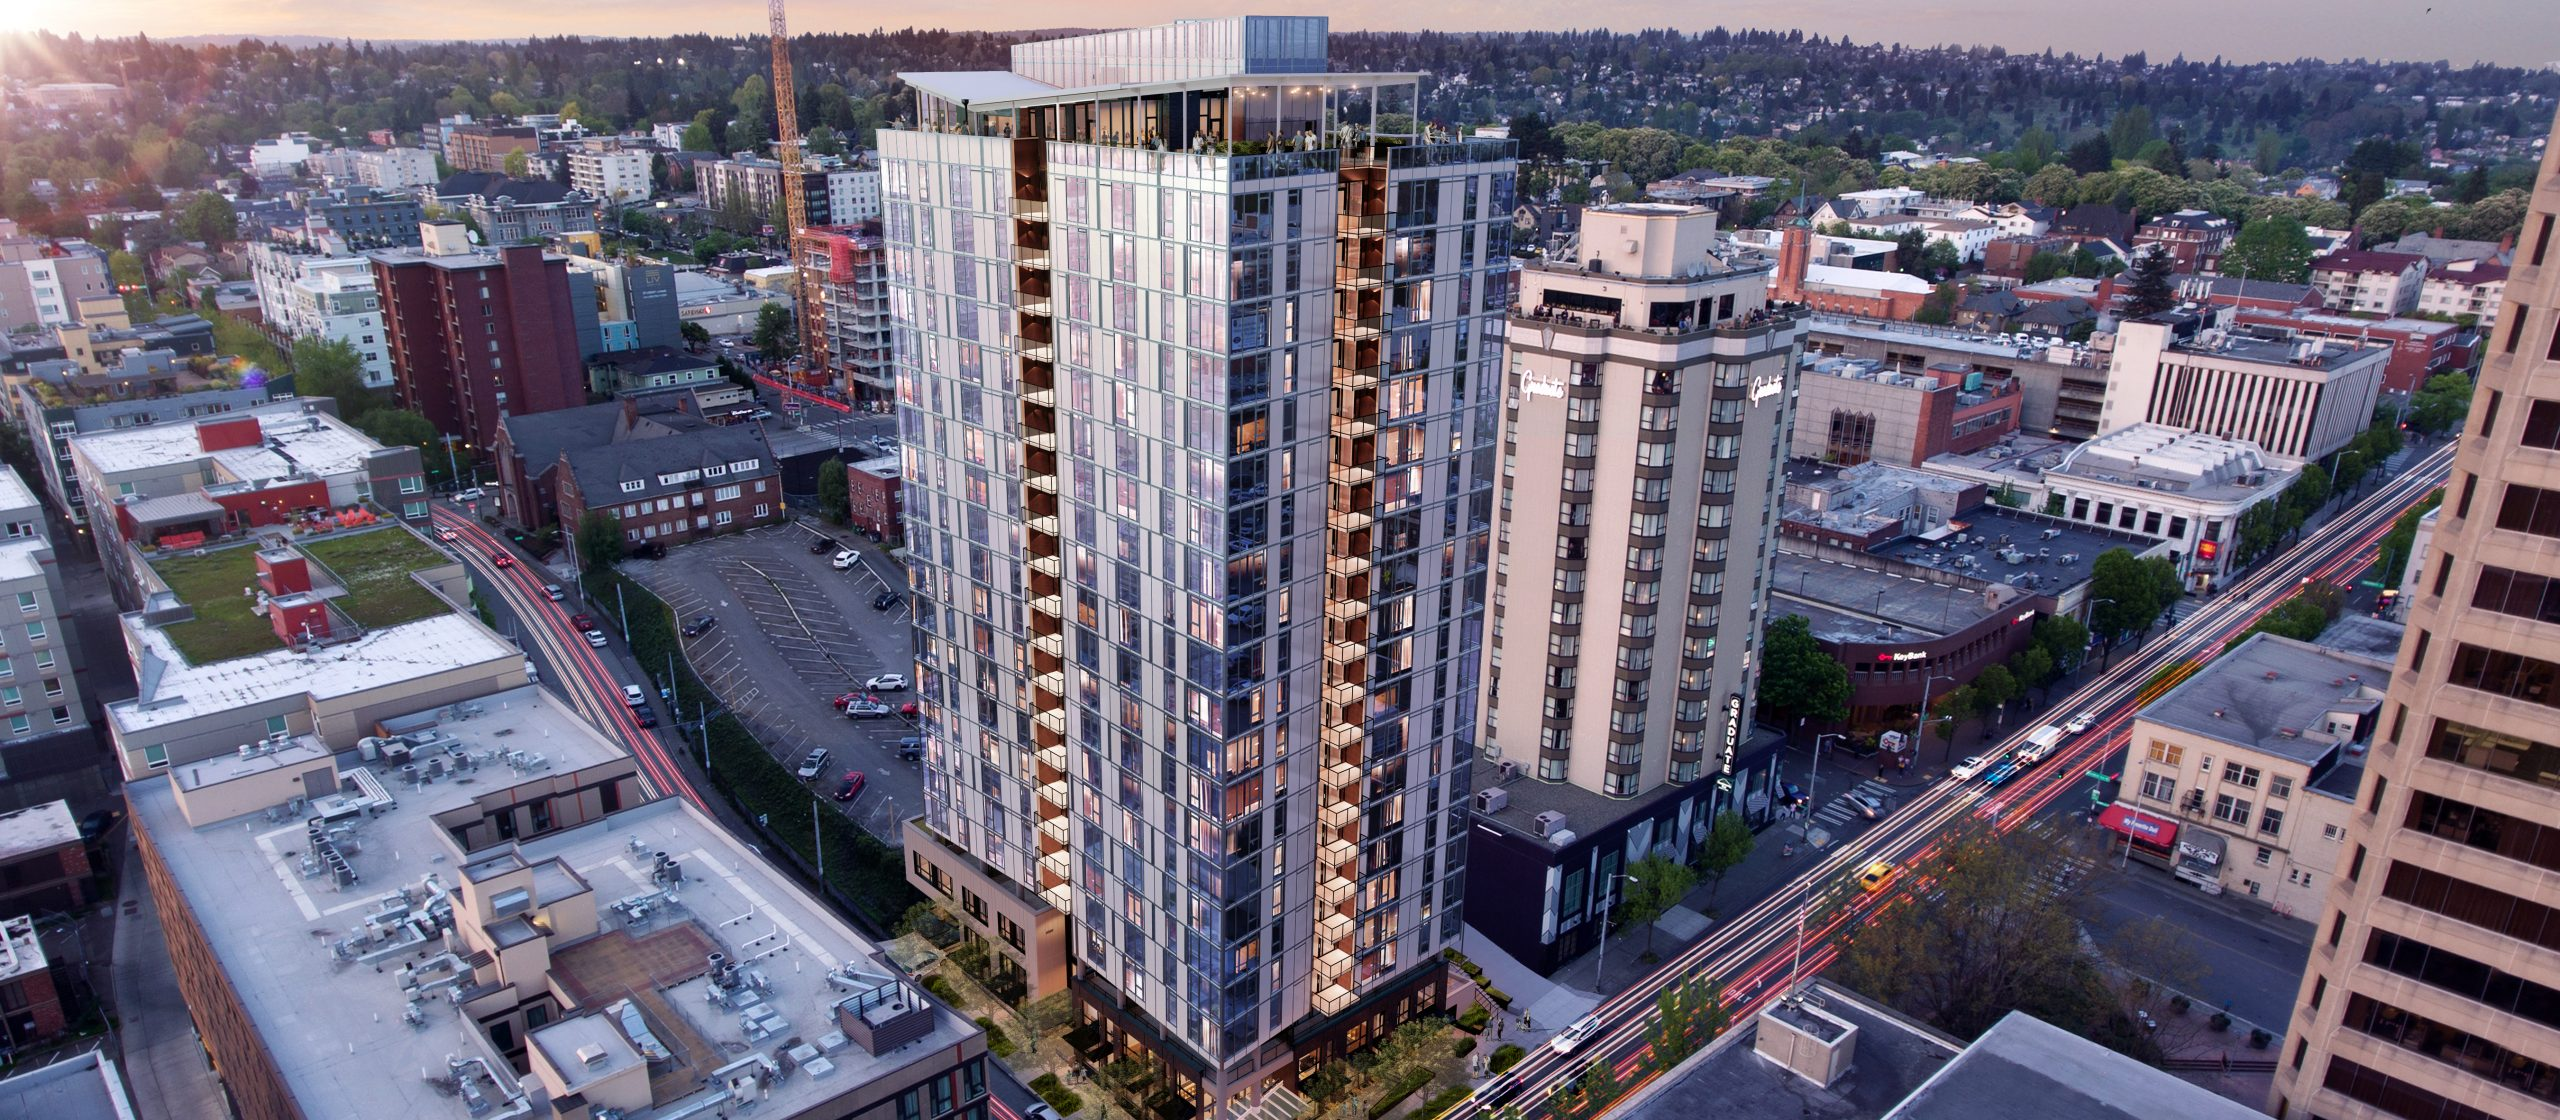 1200 NE 45th Street Tower Rendering